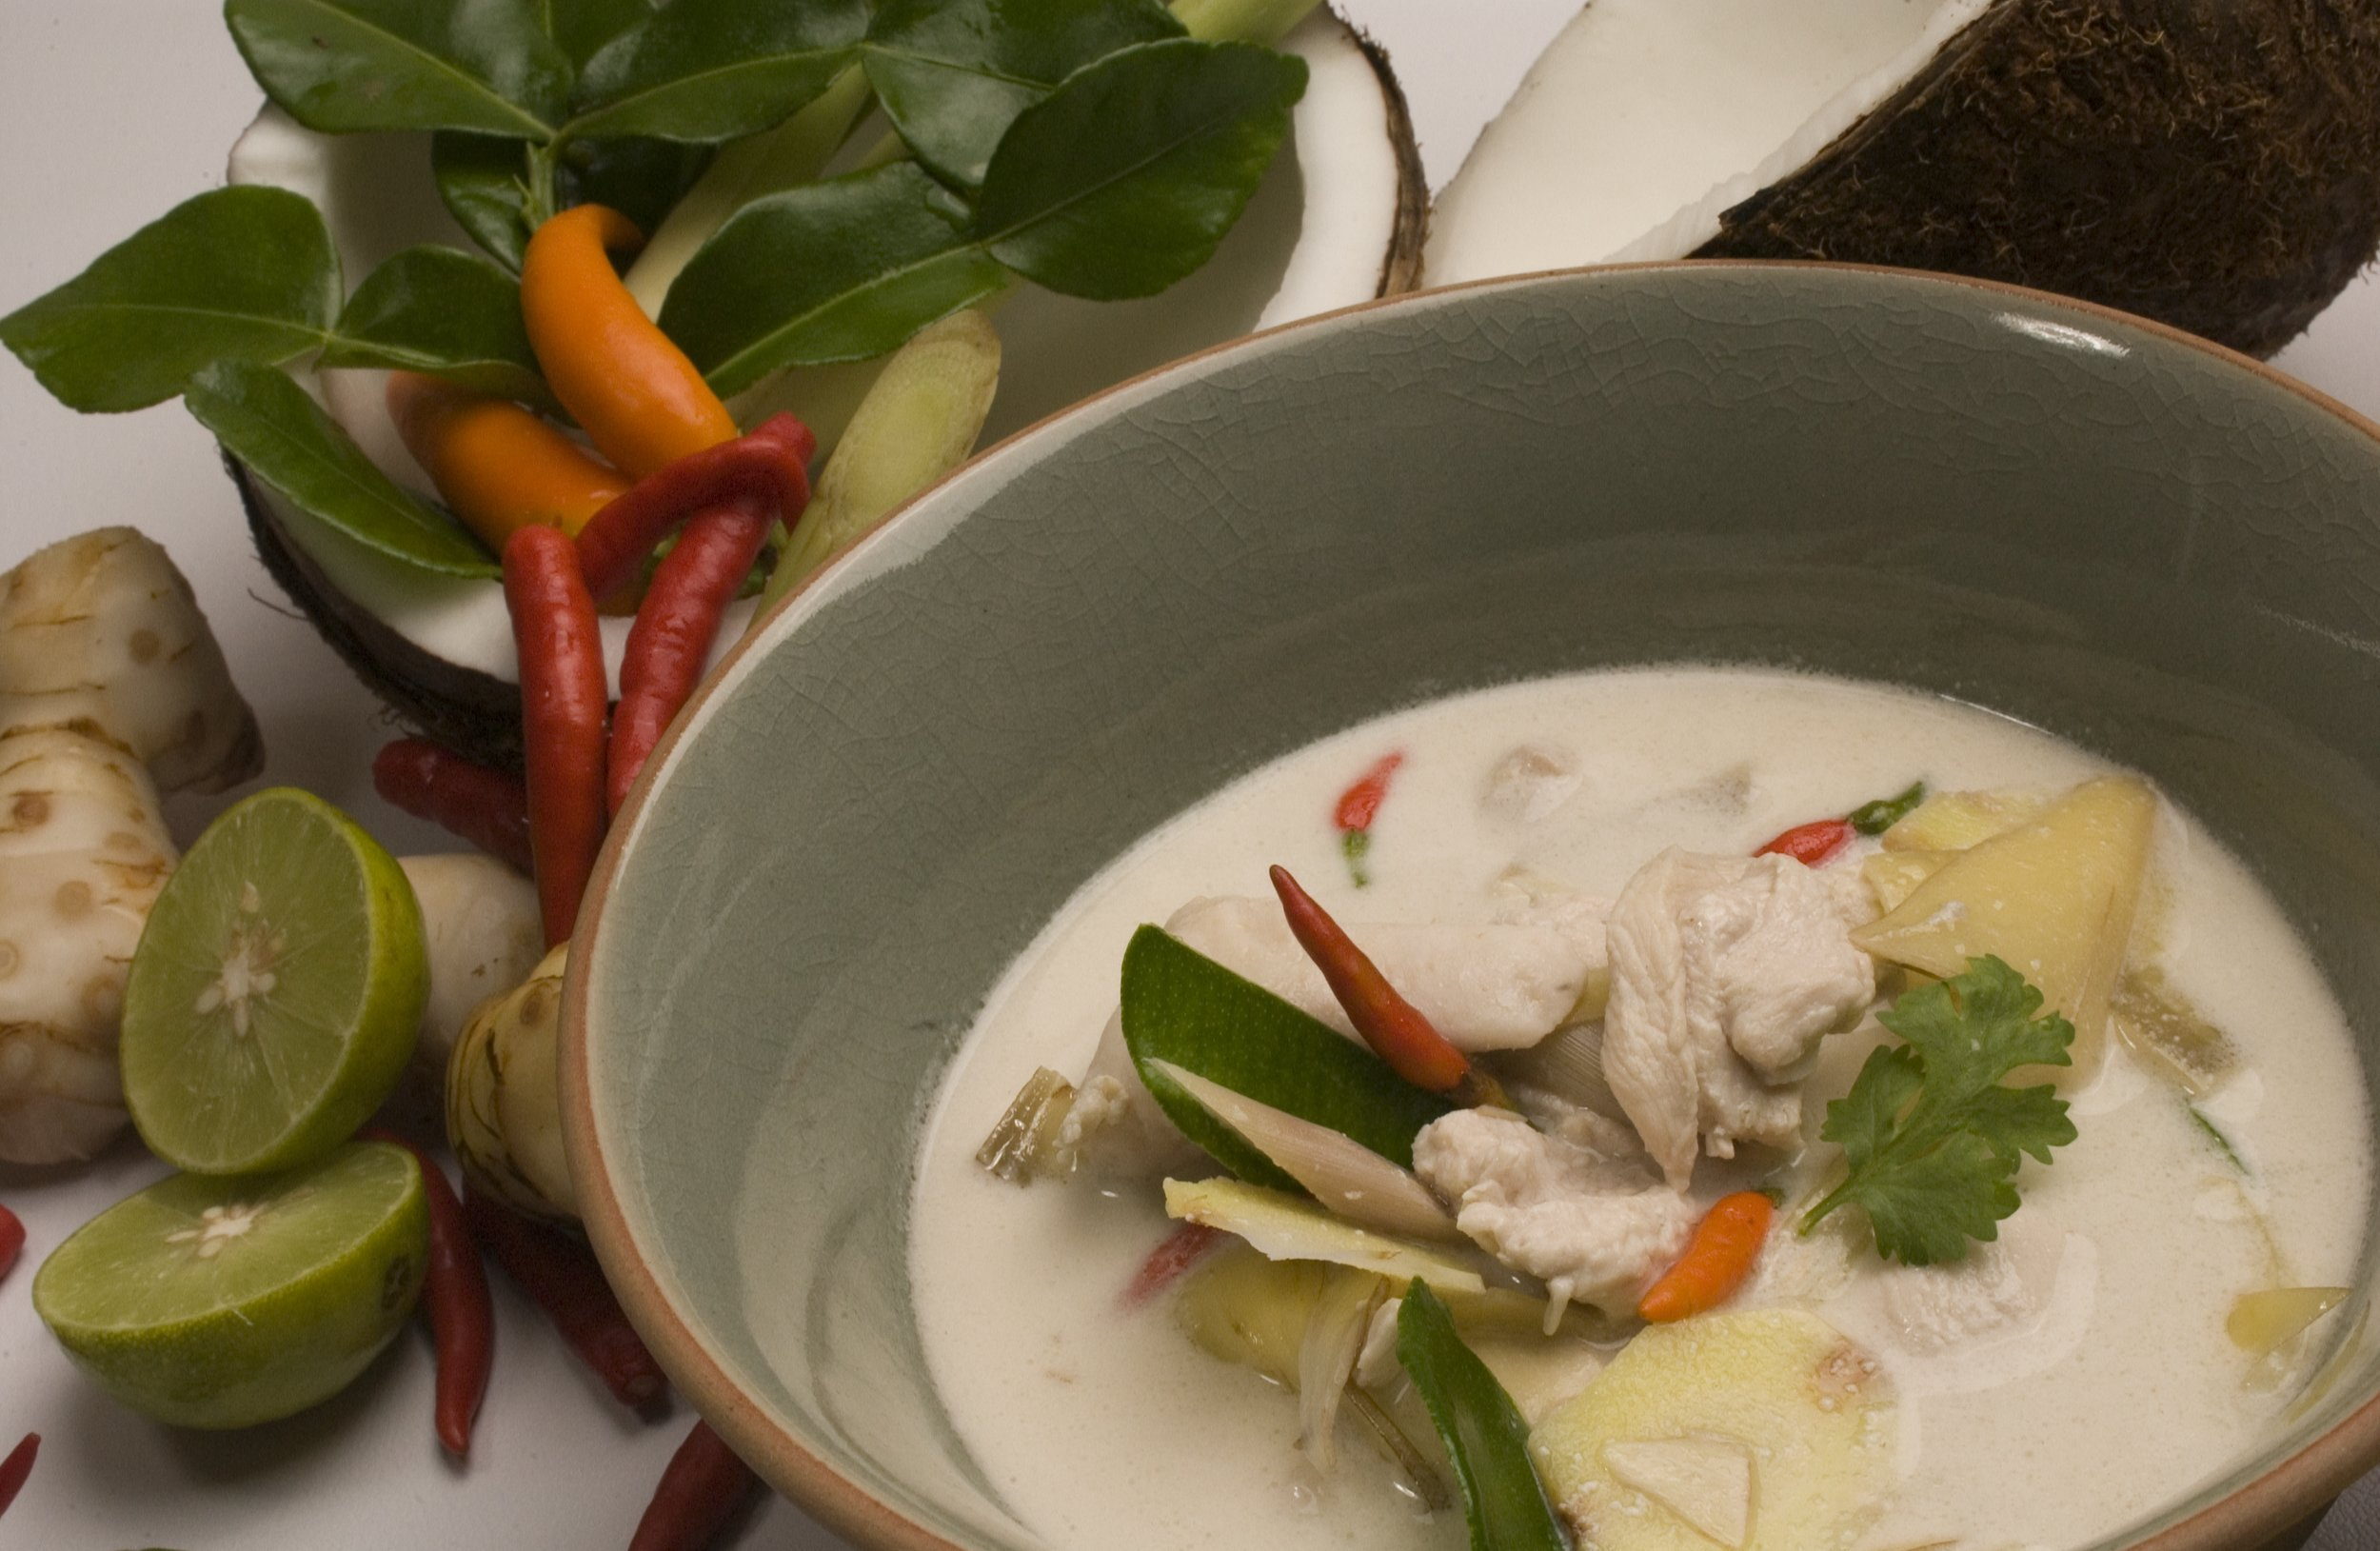 tom-kha-kai-thai-food.jpg